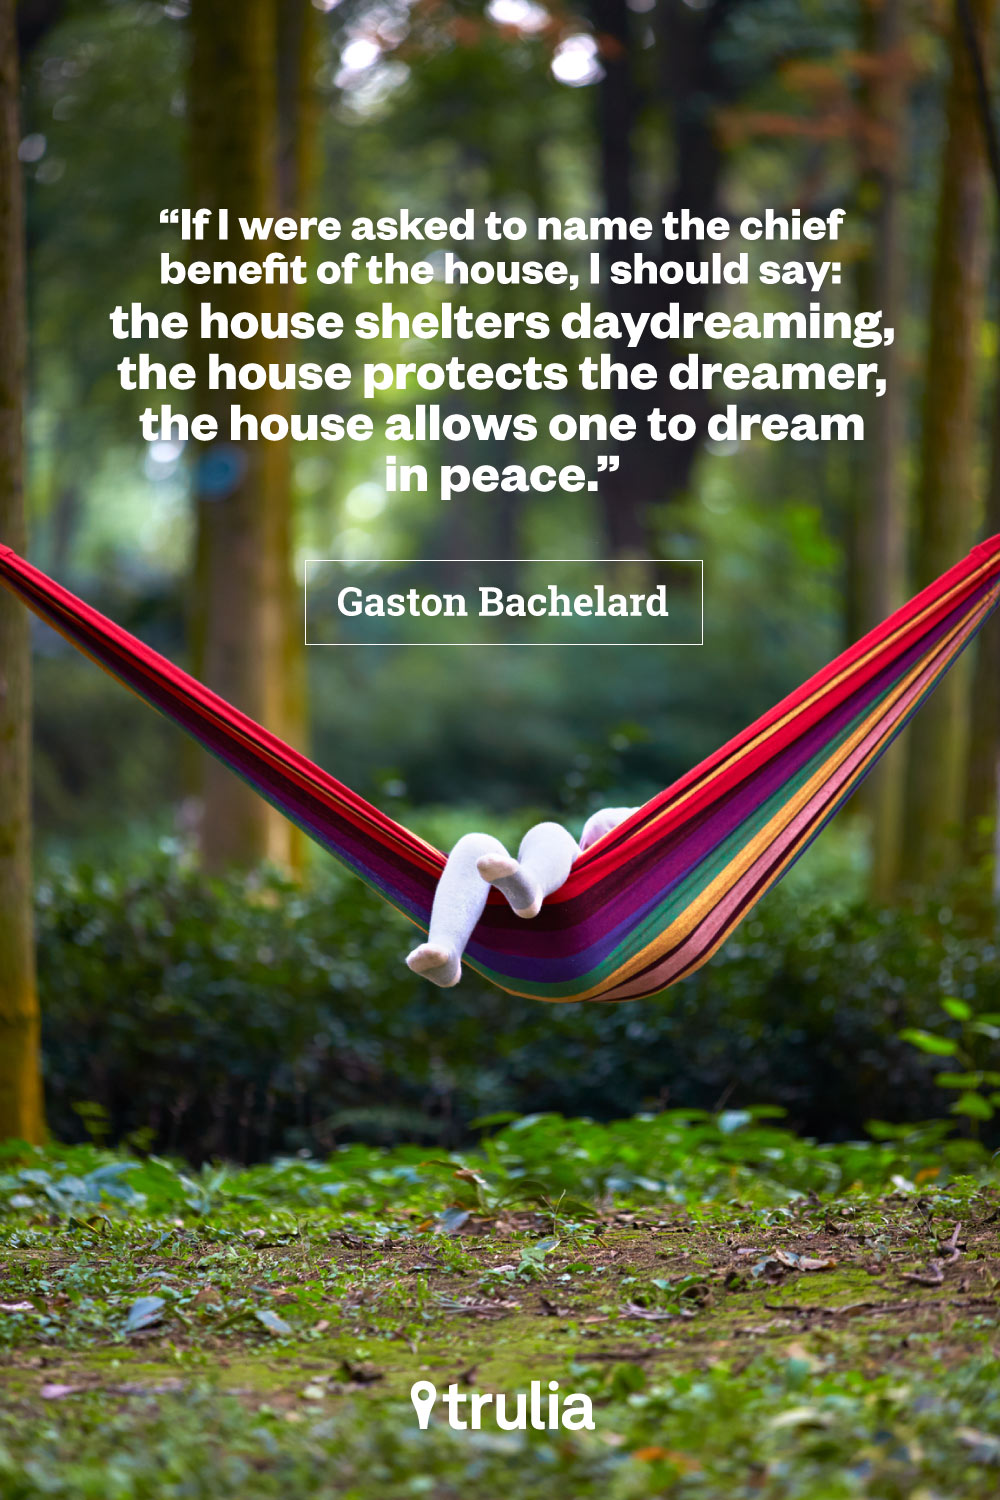 9 Quotes to Inspire First-Time Homebuyers - Trulia's Blog